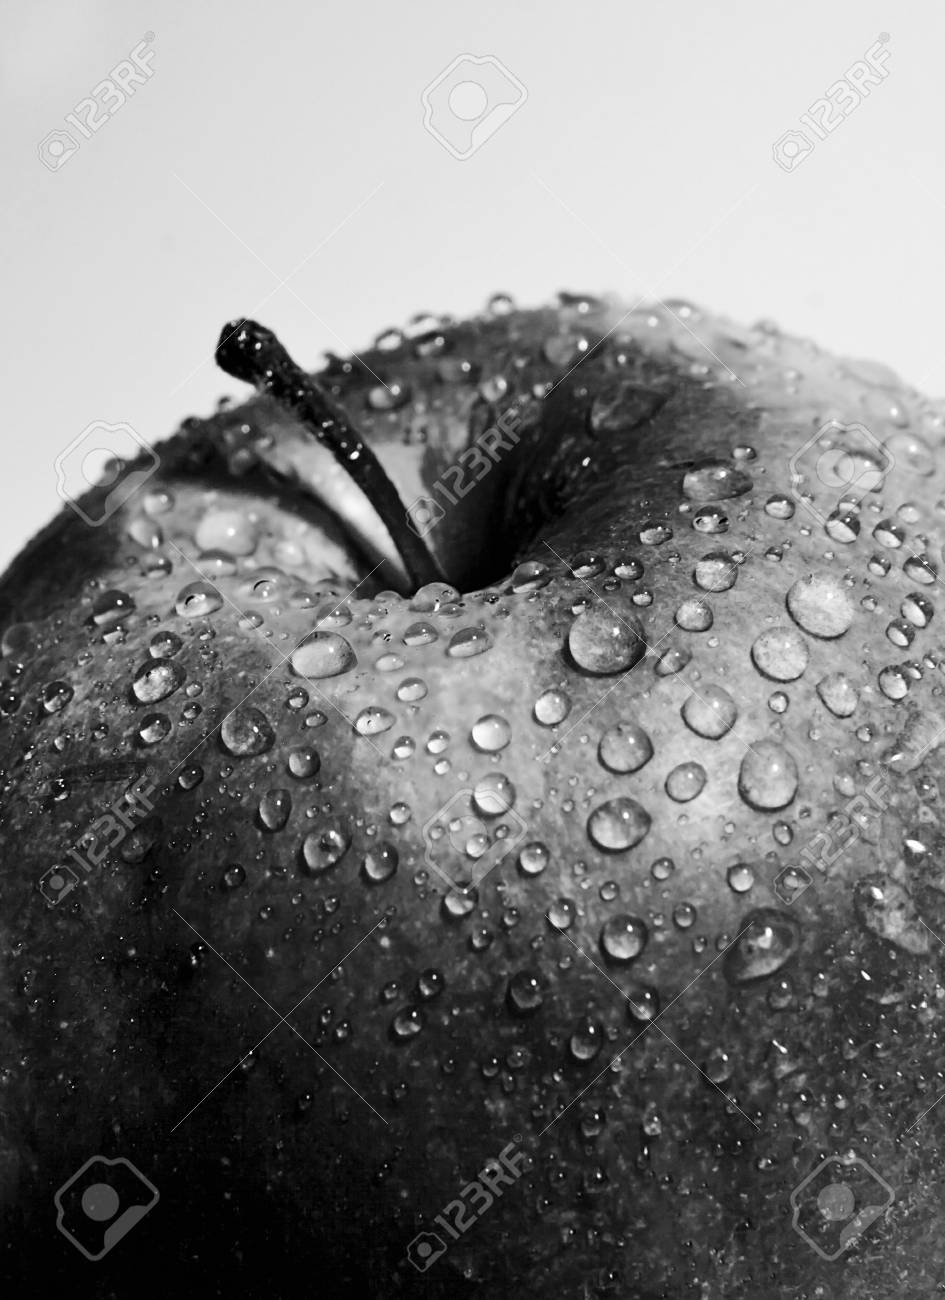 Juicy red apple with drops close up of black and white